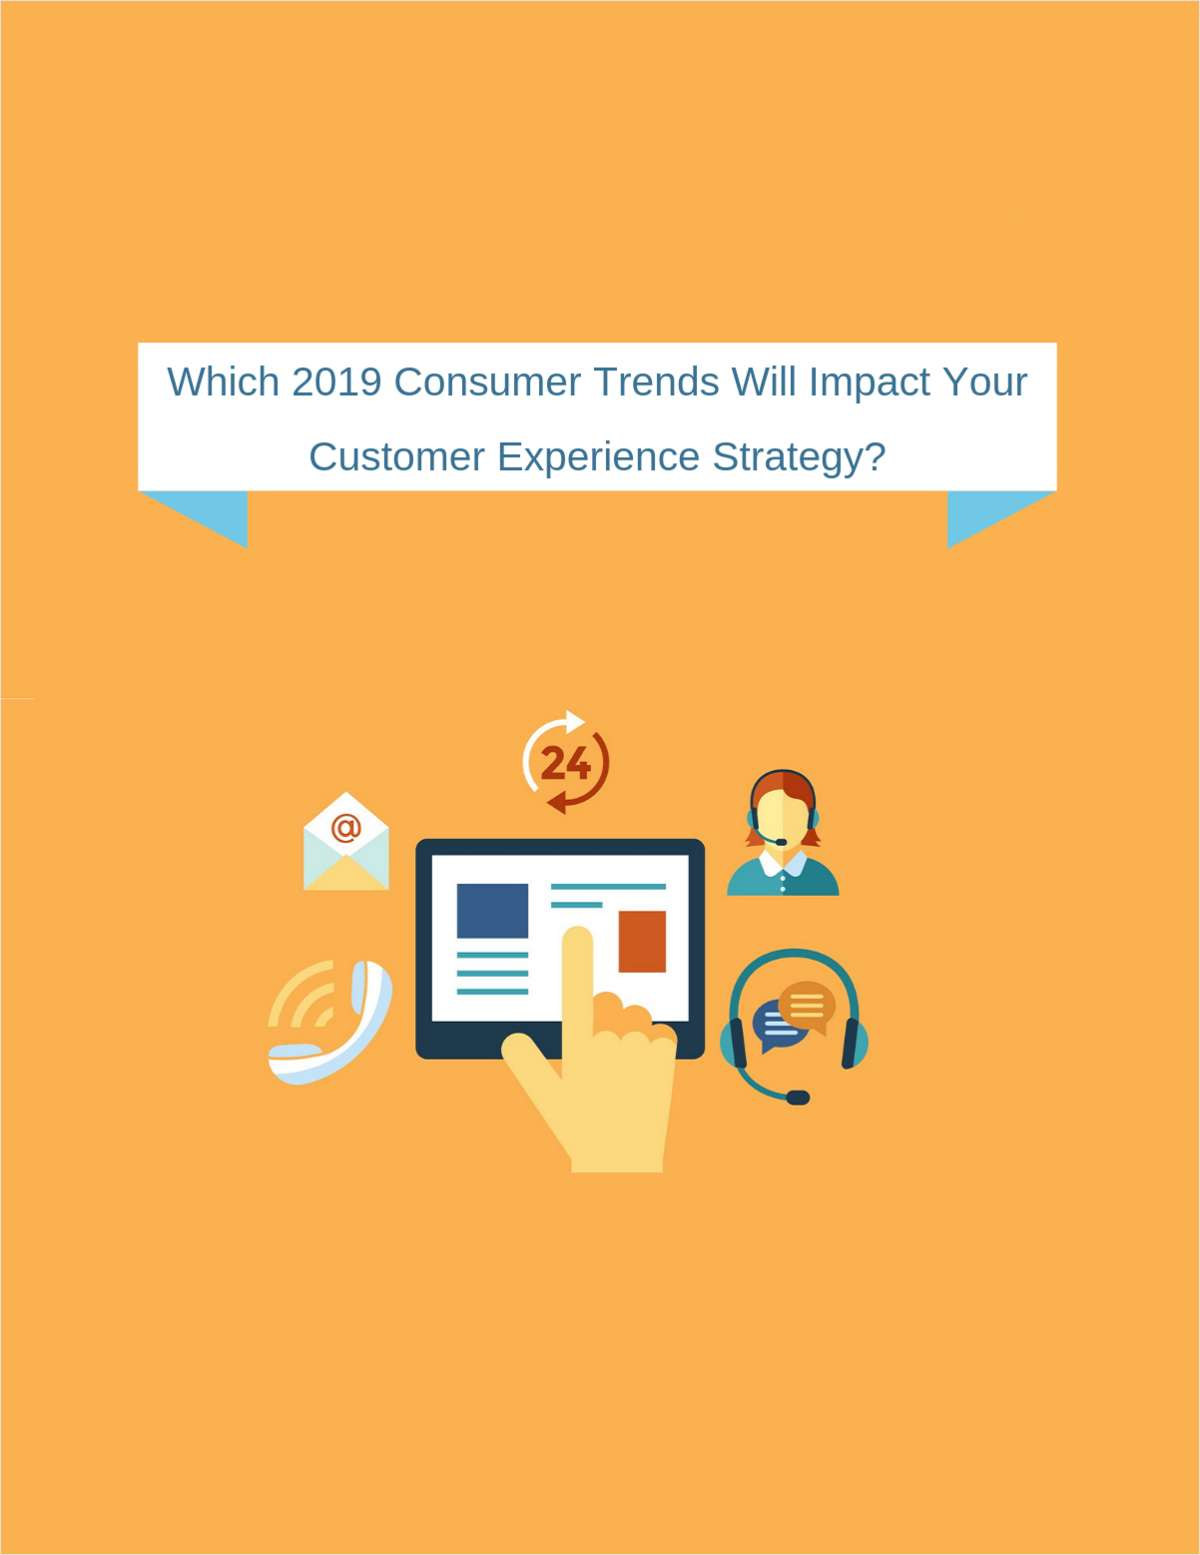 Which 2019 Consumer Trends Will Impact Your Customer Experience Strategy?